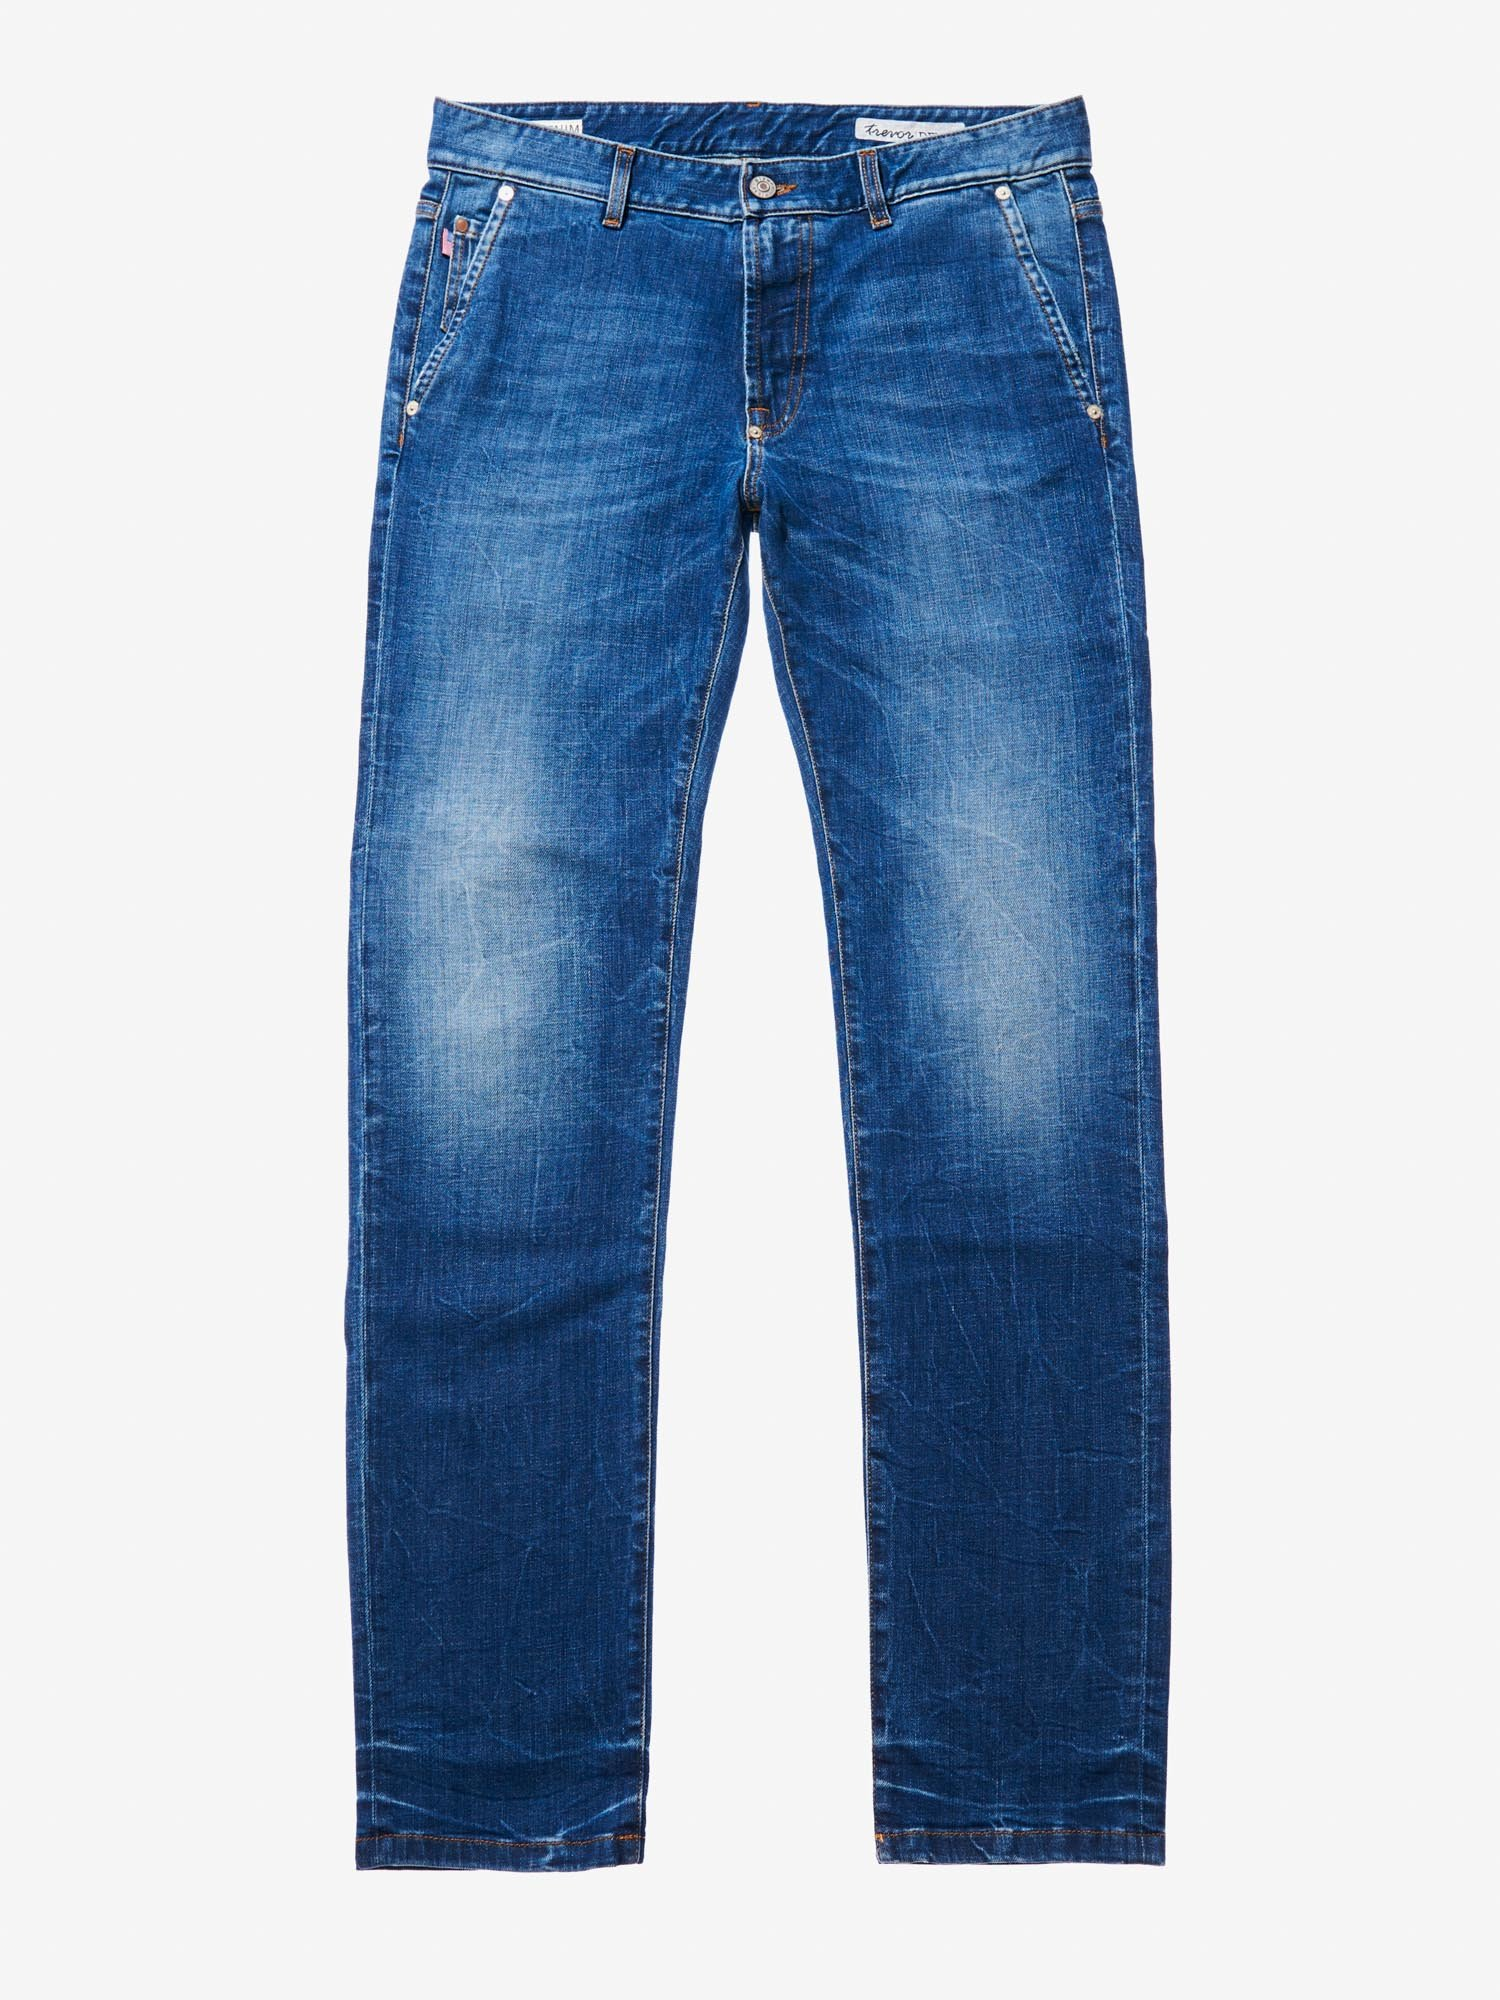 Blauer - PANTALONE DENIM - Denim Washing - Blauer